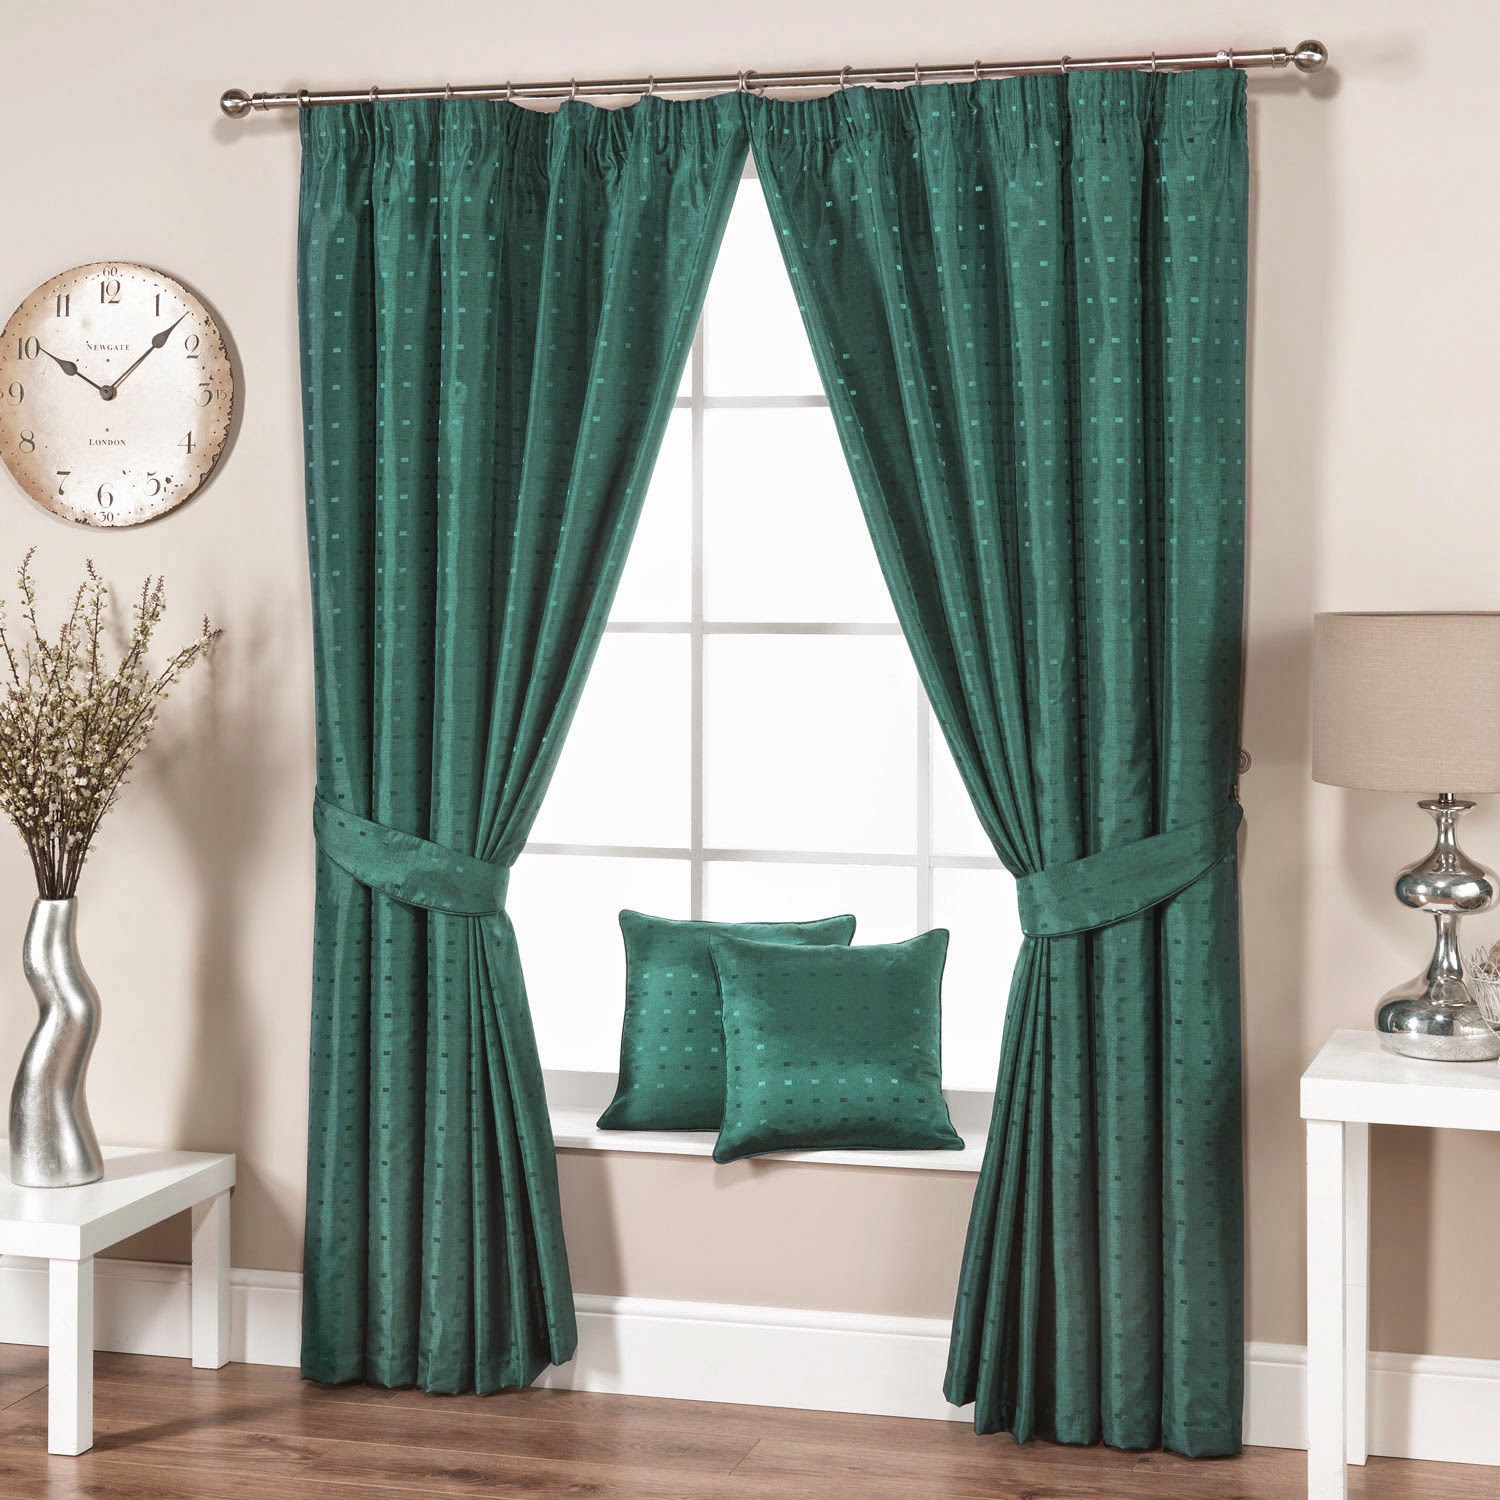 Green living room curtains for modern interior - Living room with curtains ...